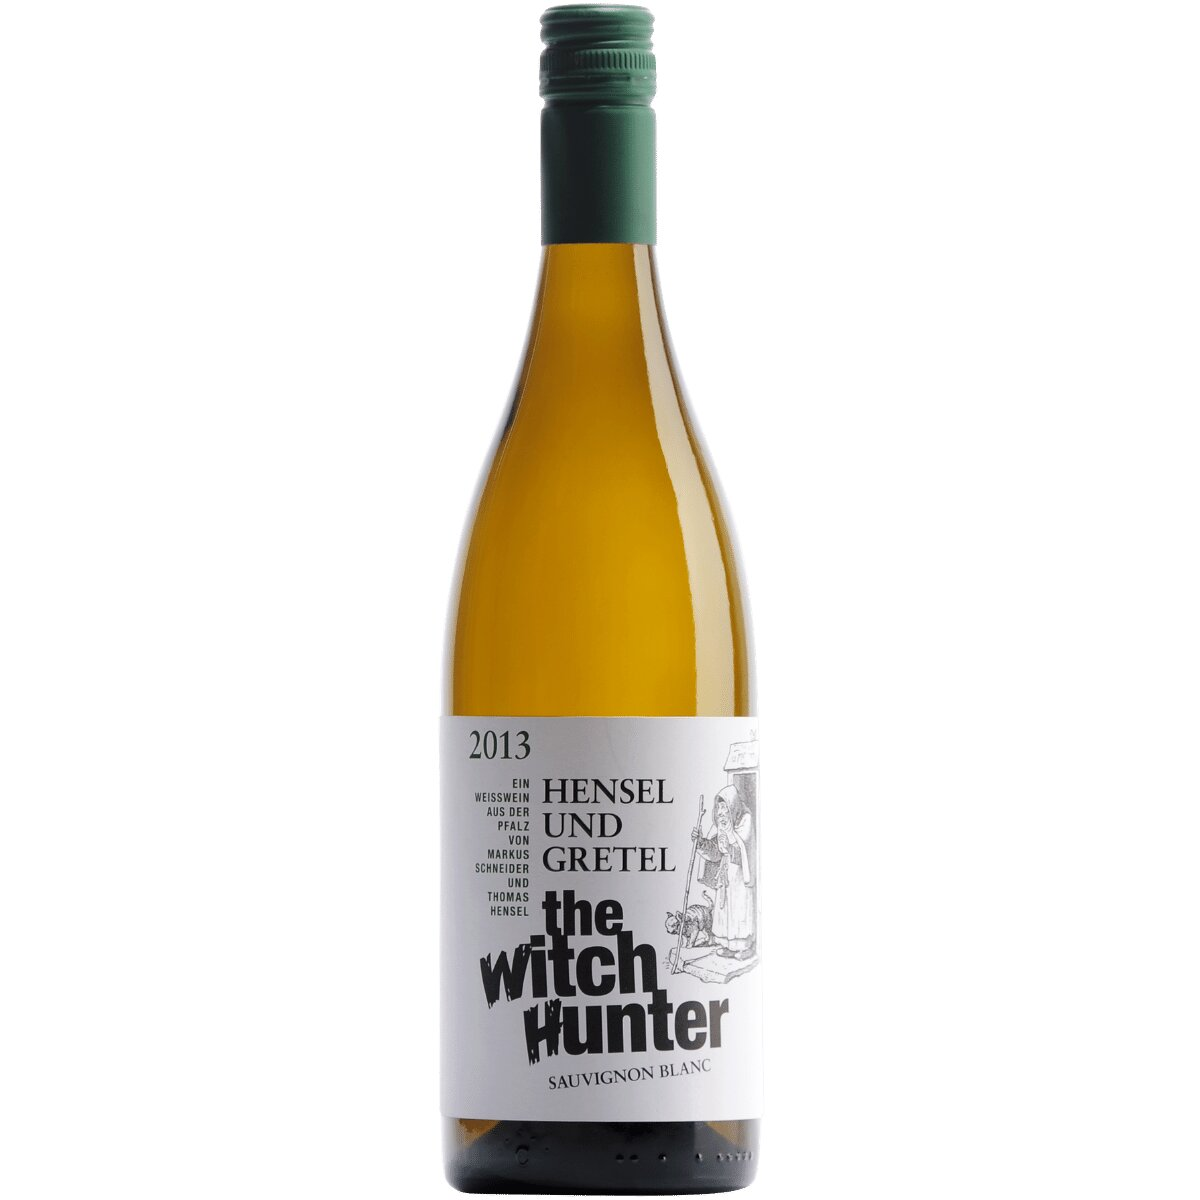 Hensel und Gretel The Witch Hunter Sauvignon Blanc